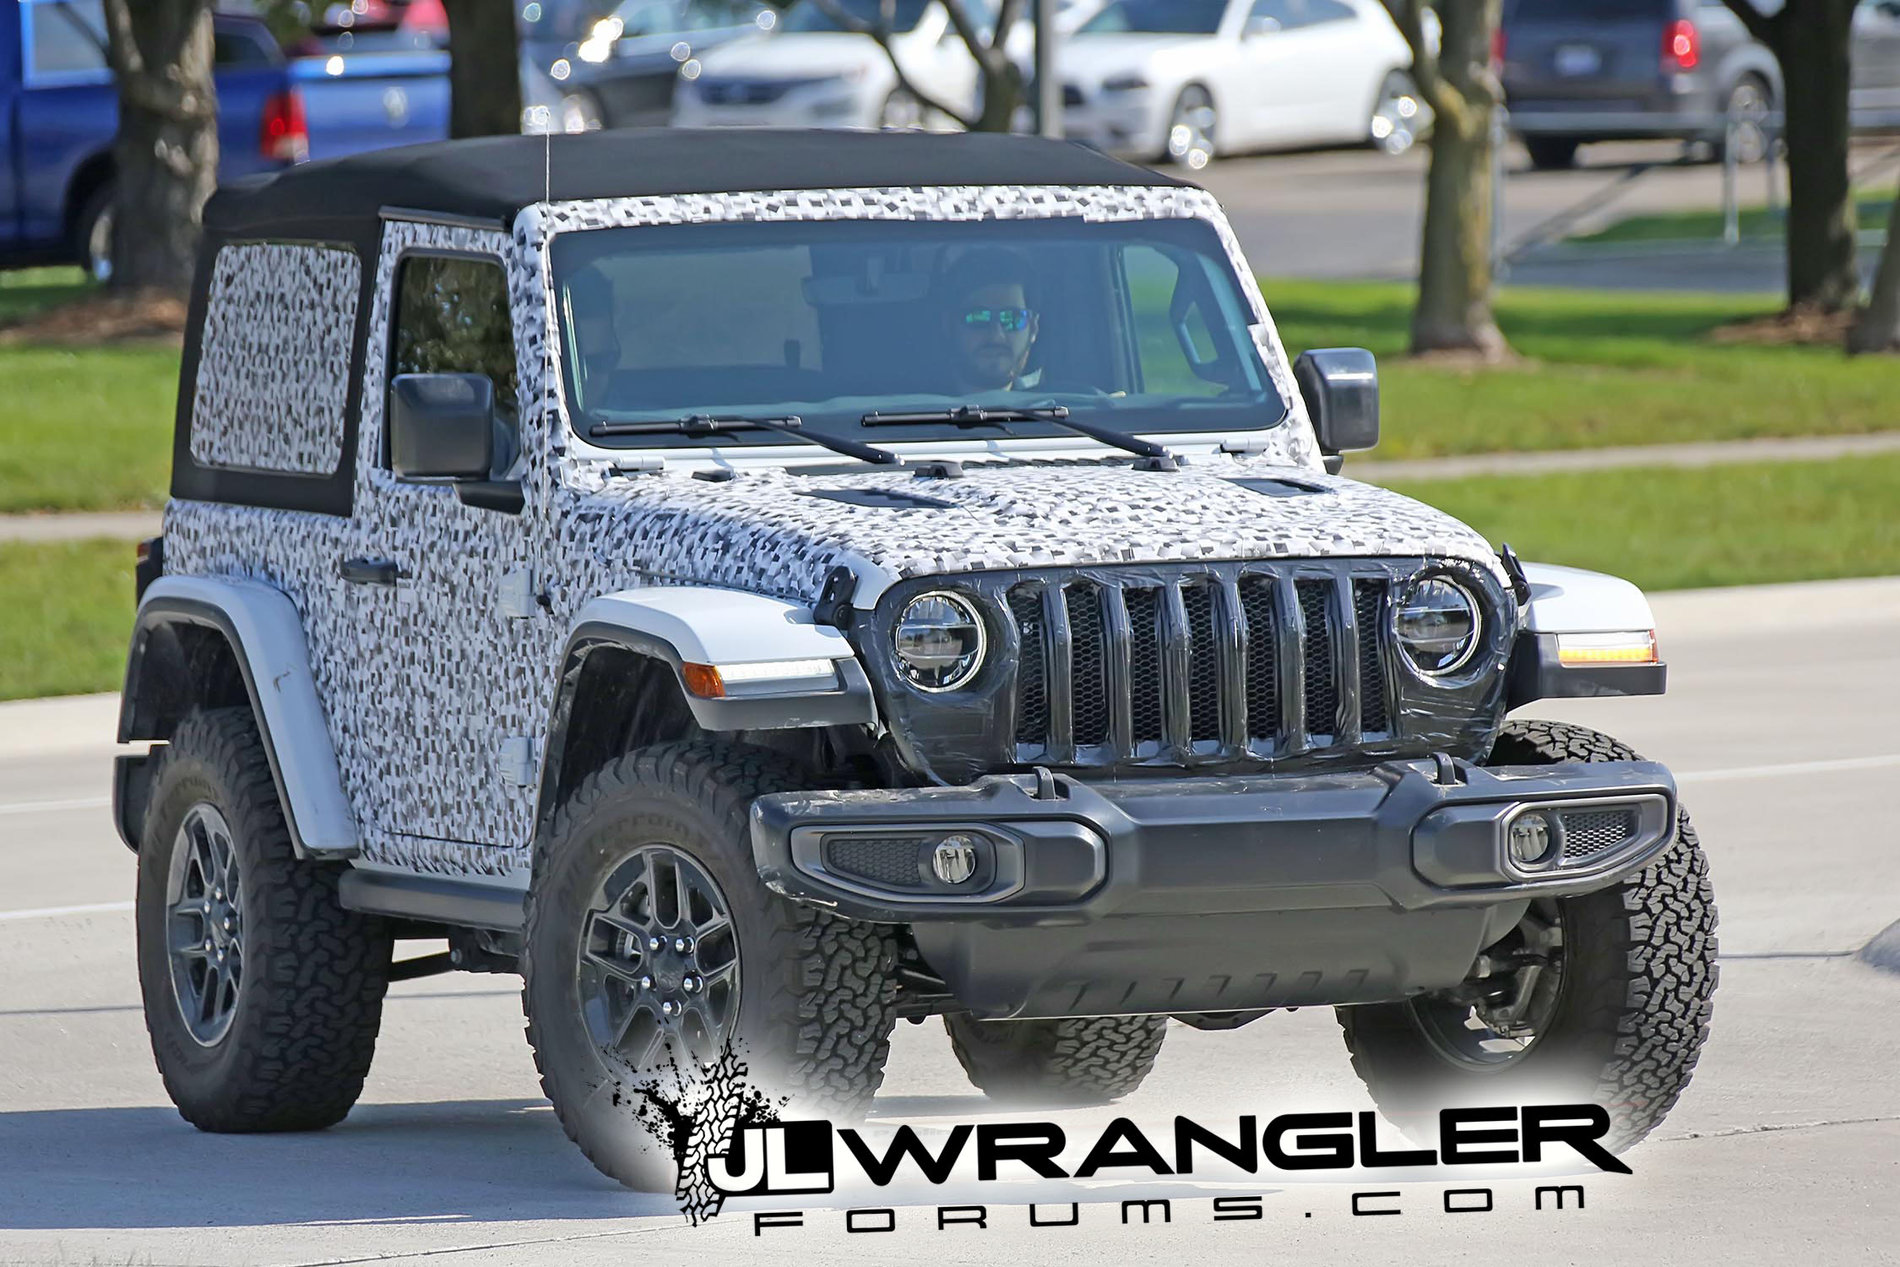 Spied Wrangler 2 Door Jl Rubicon Soft Top And Export Jl